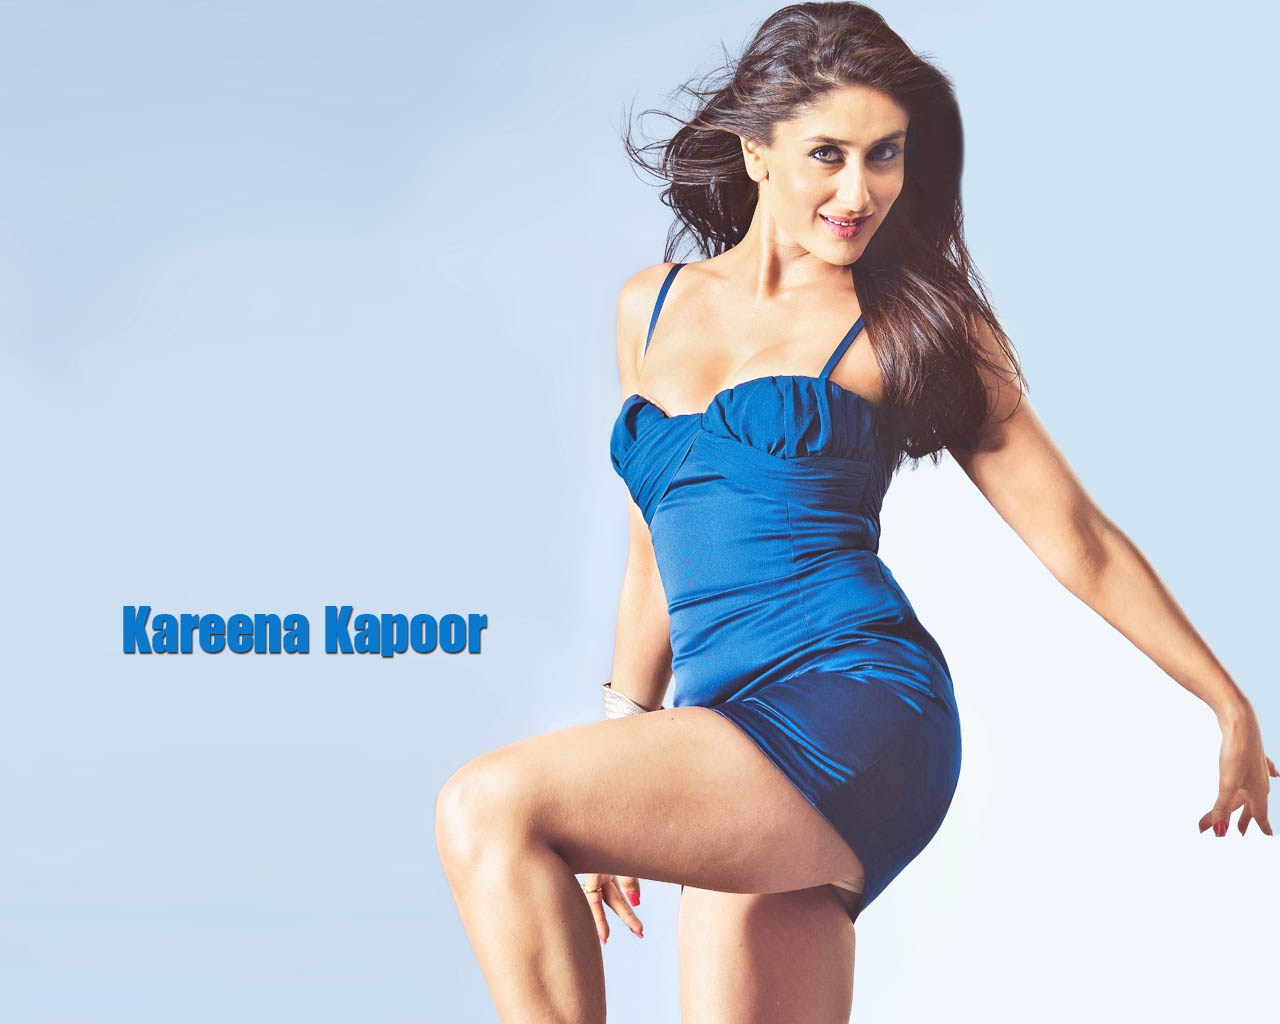 kareena Kapoor www online datingside for gratis